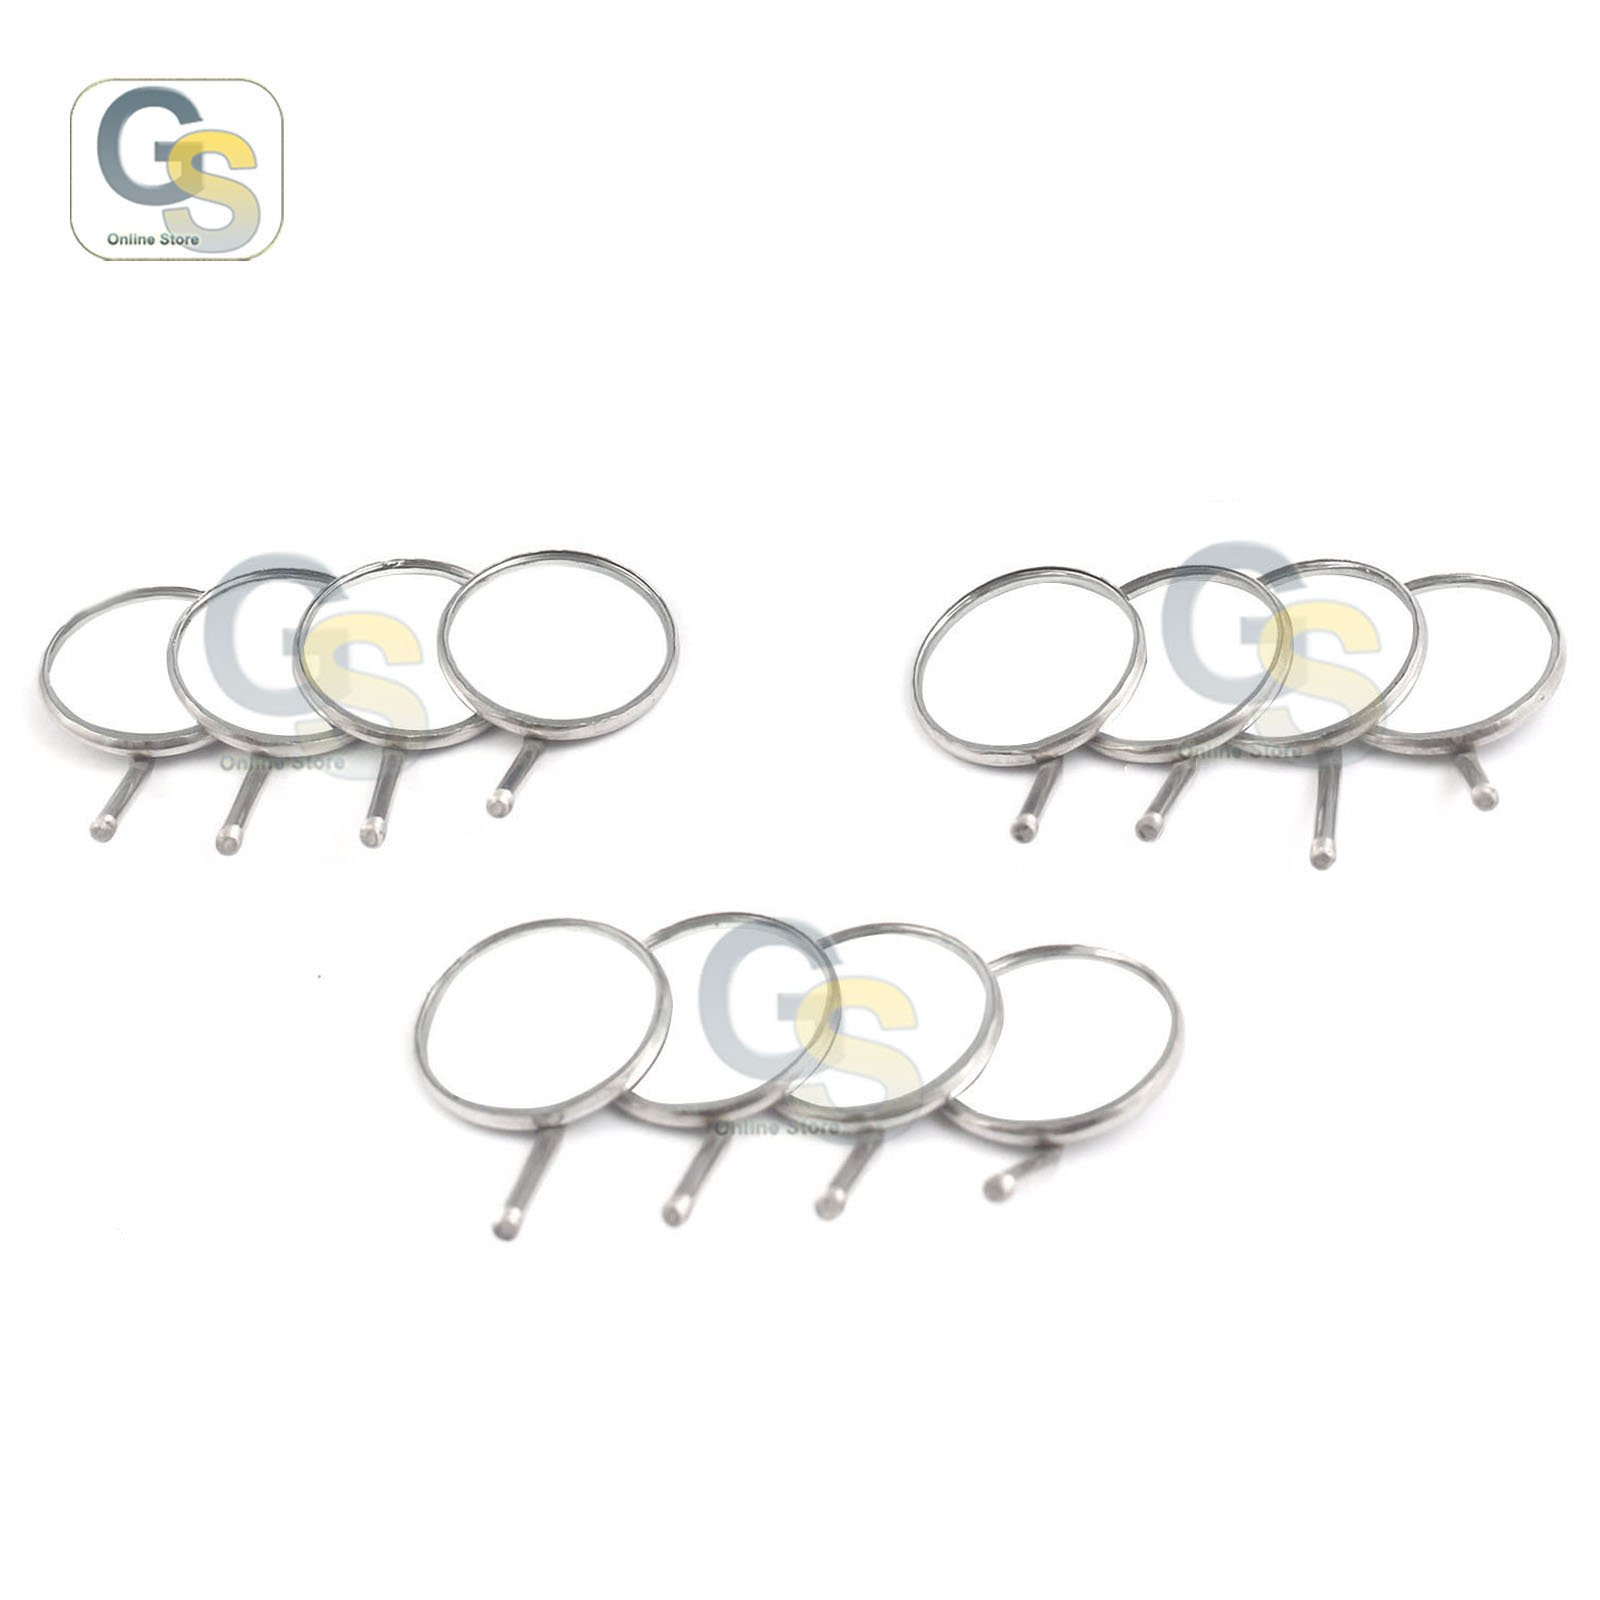 G.S Dental Mouth Mirror #5, Simple Stem (Pack of 12) Best Quality